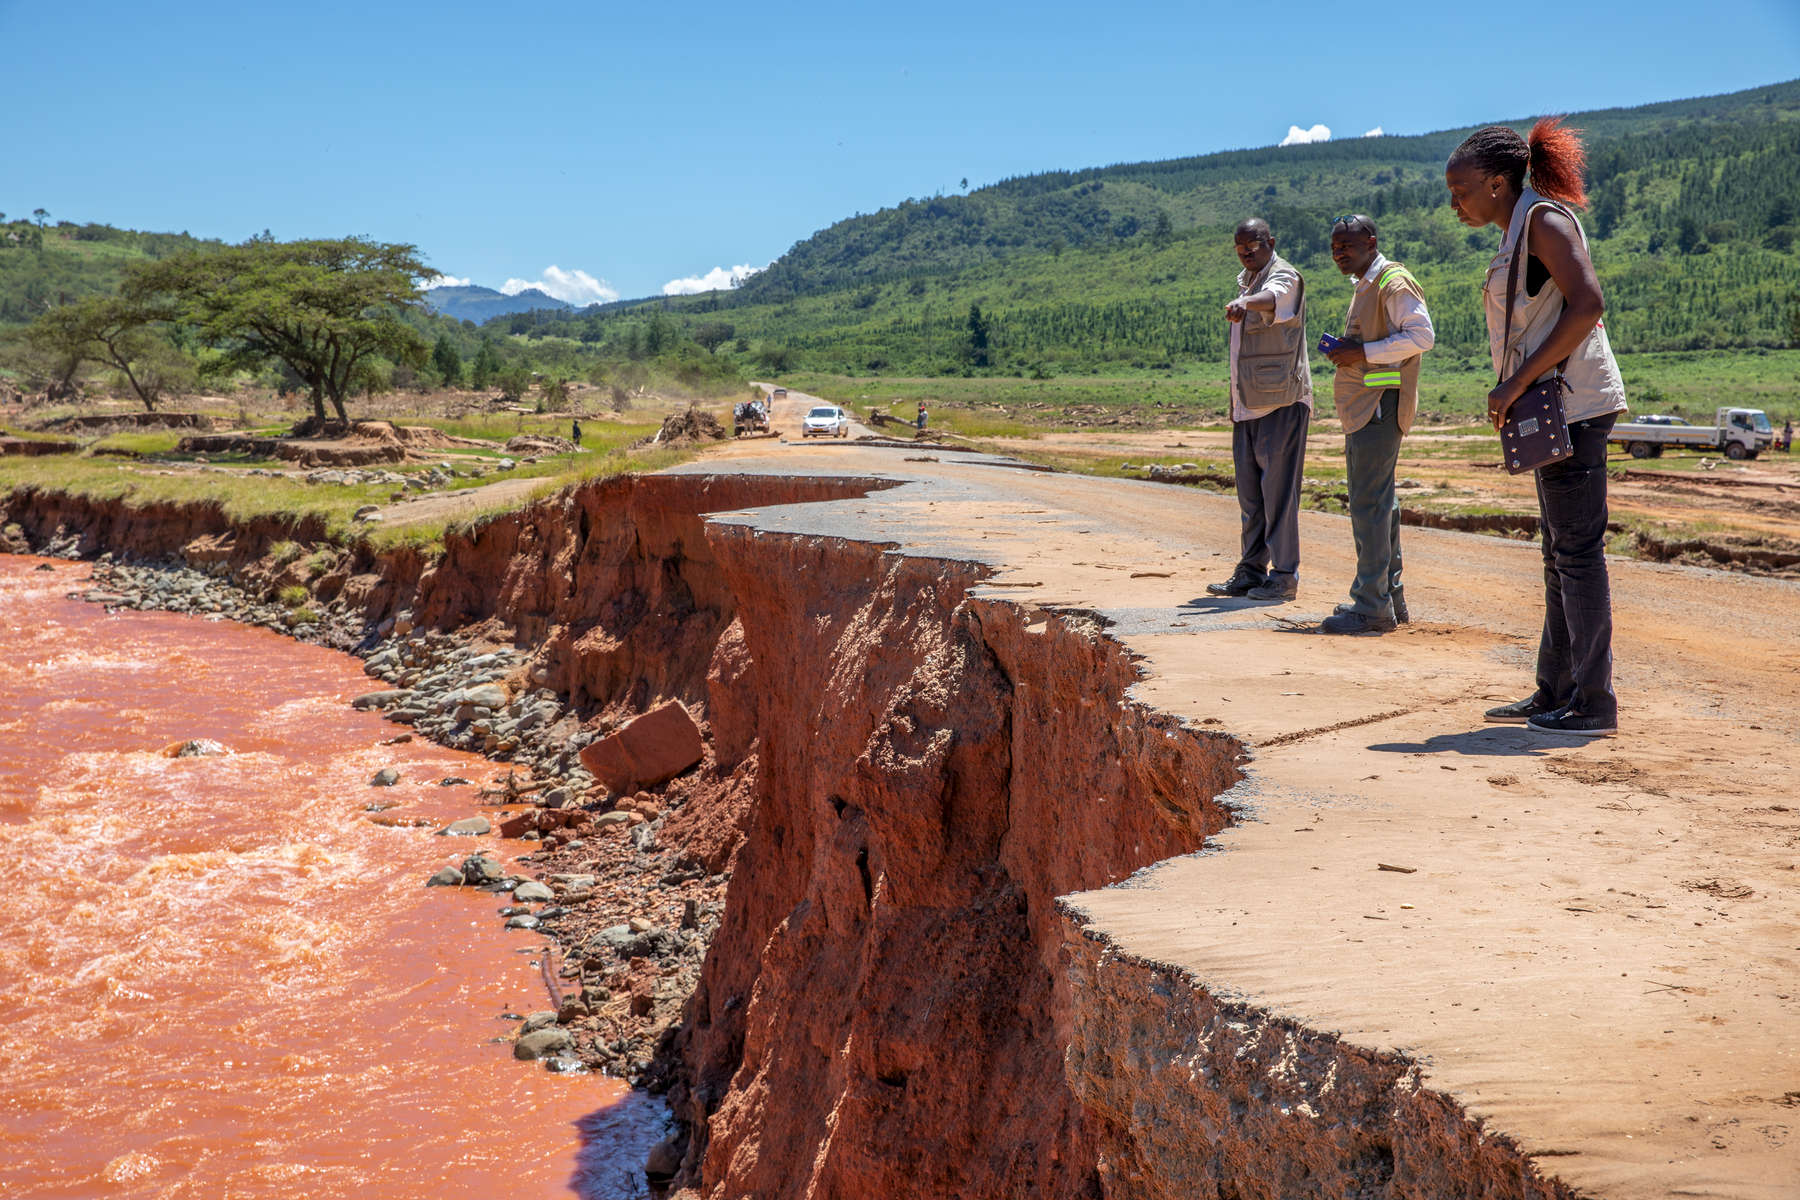 Mercy Corps WASH Specialist Vimbayi Mazanhi (right) peers over the edge of a damaged bridge over the Nyahodi river, which burst its banks and washed away an entire market full of stalls, vendors and customers. It is estimated that 14 bridges around Chimanimani were destroyed, paralyzing transportation and making aid delivery slow and treacherous.